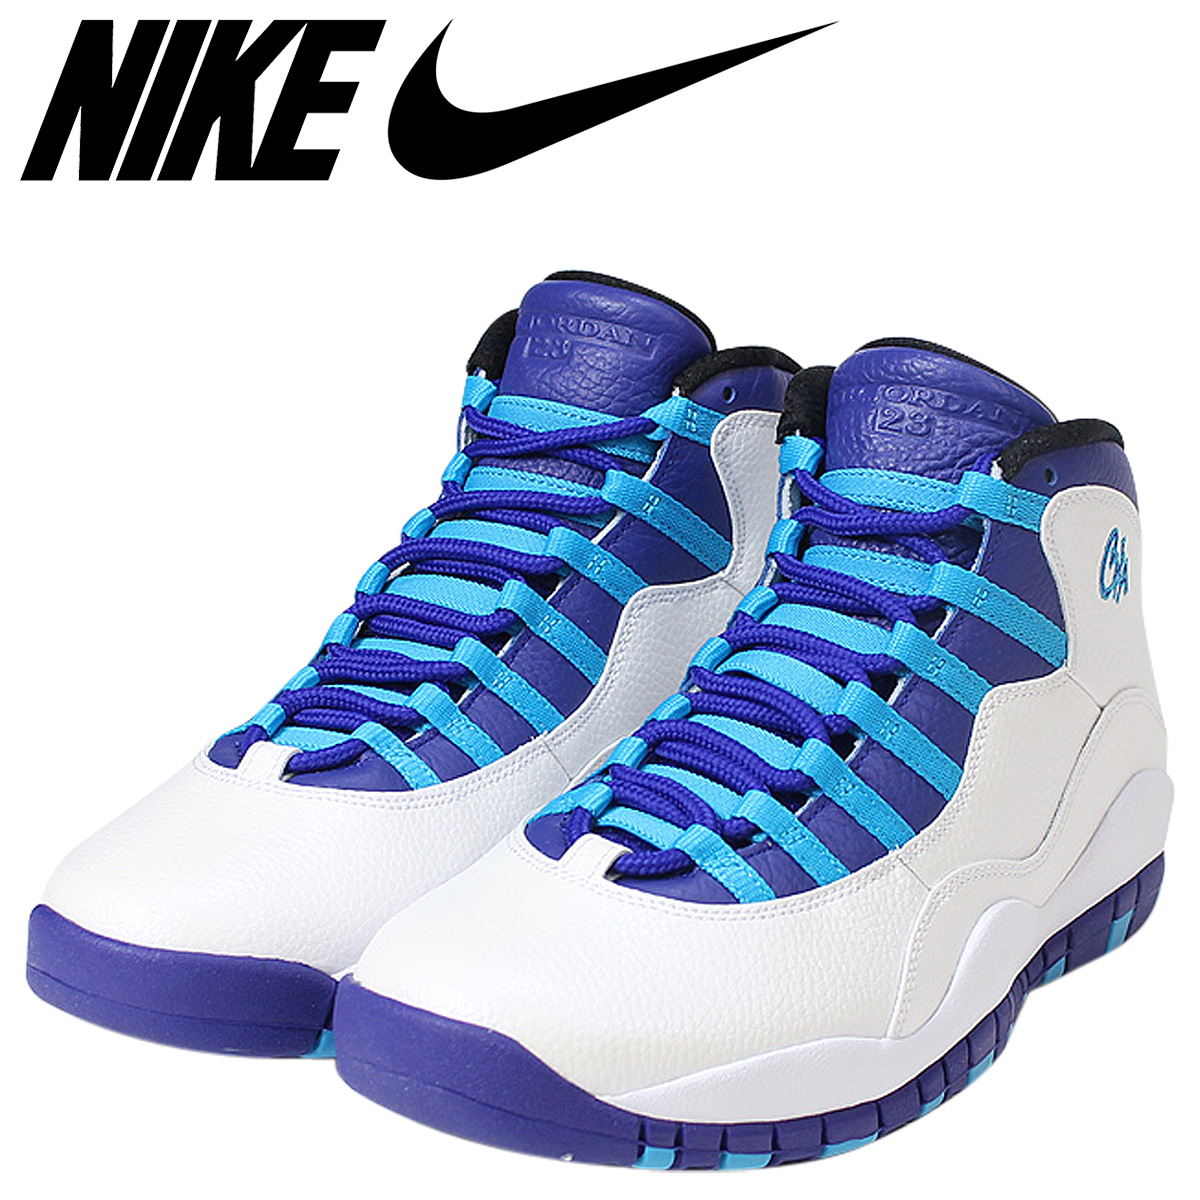 b460f322f47d Whats up Sports  Nike NIKE Air Jordan 10 nostalgic sneakers AIR ...